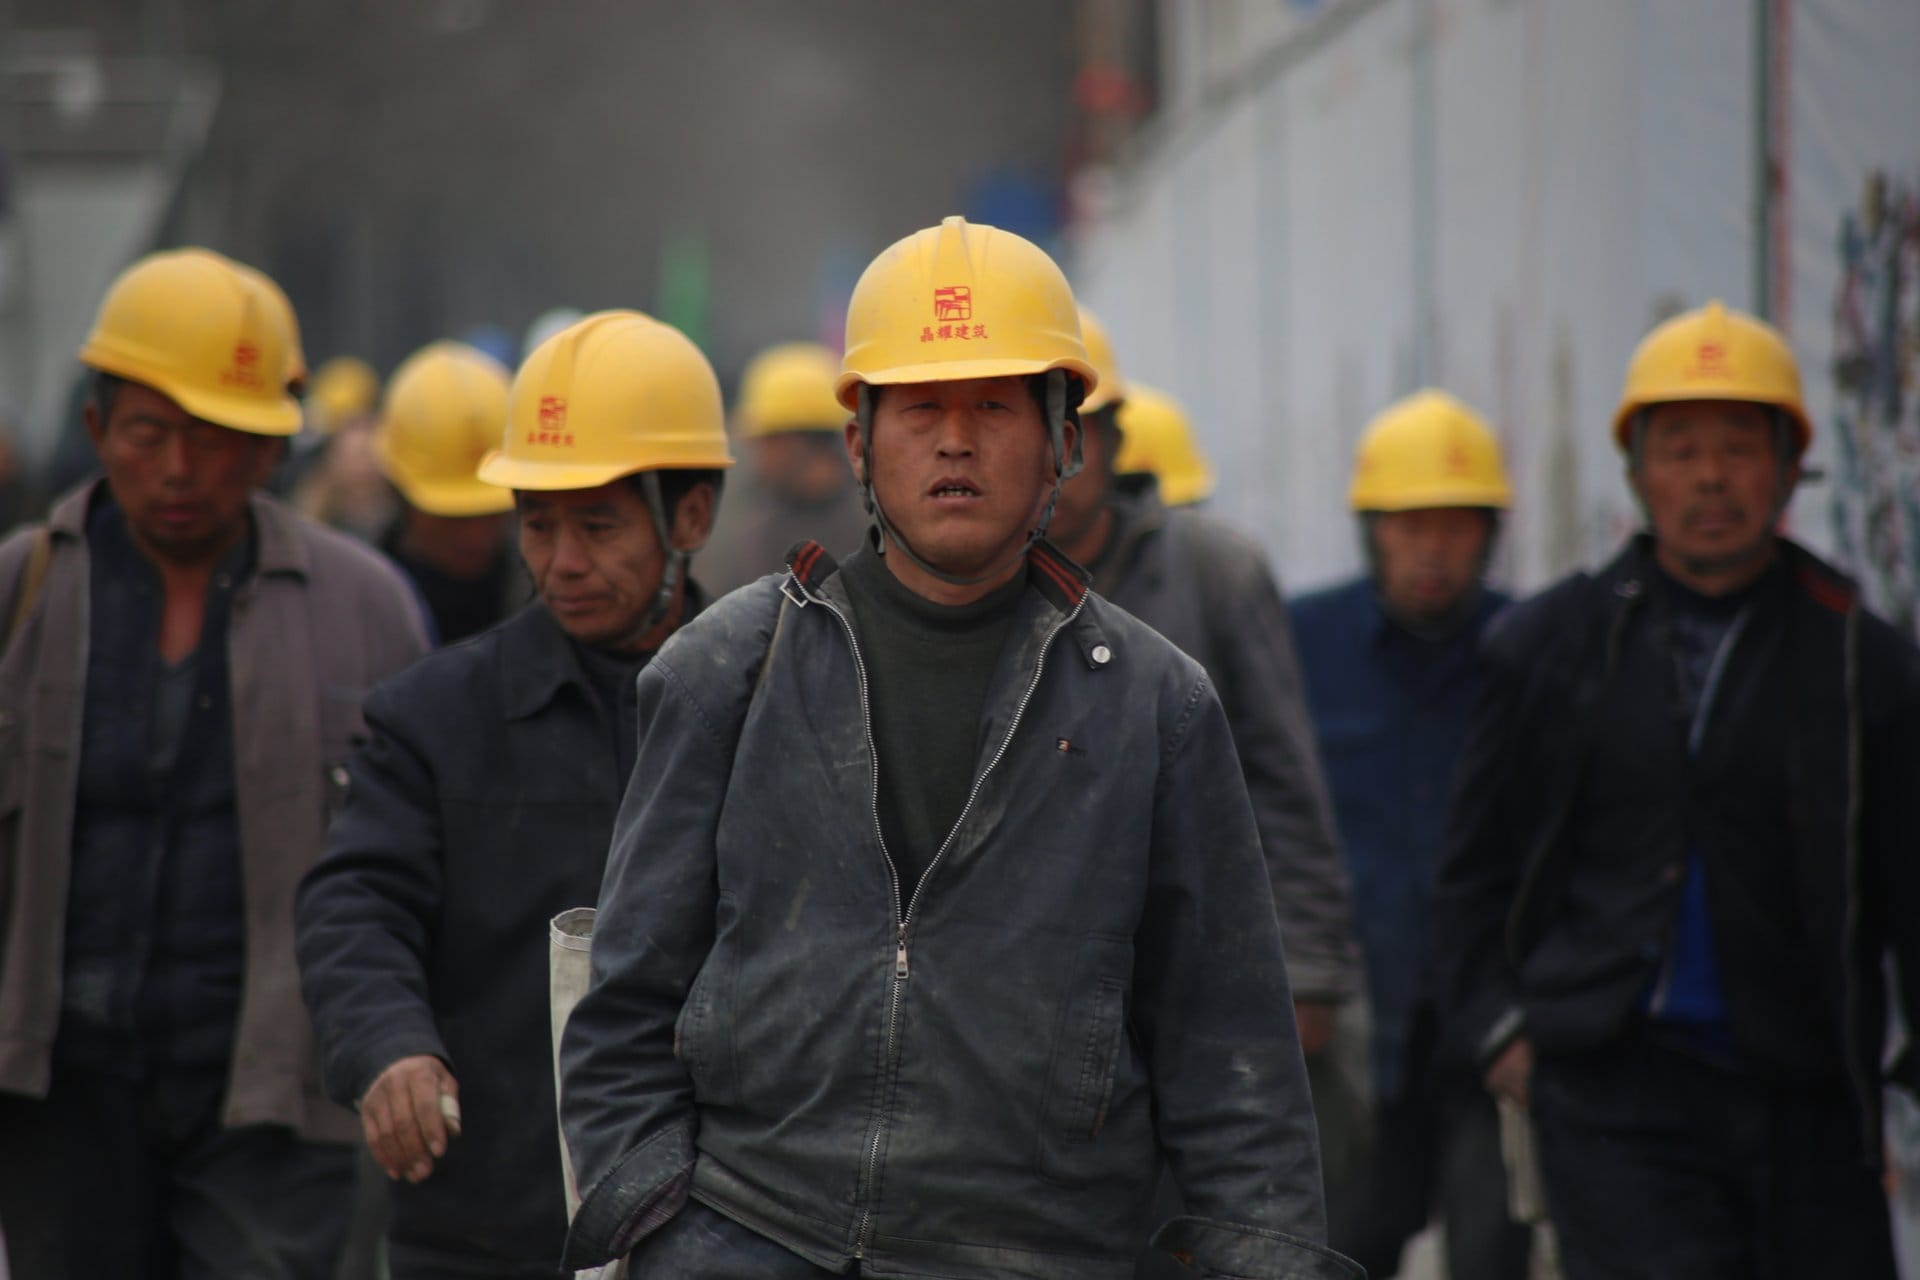 What is the average hourly wage in China?